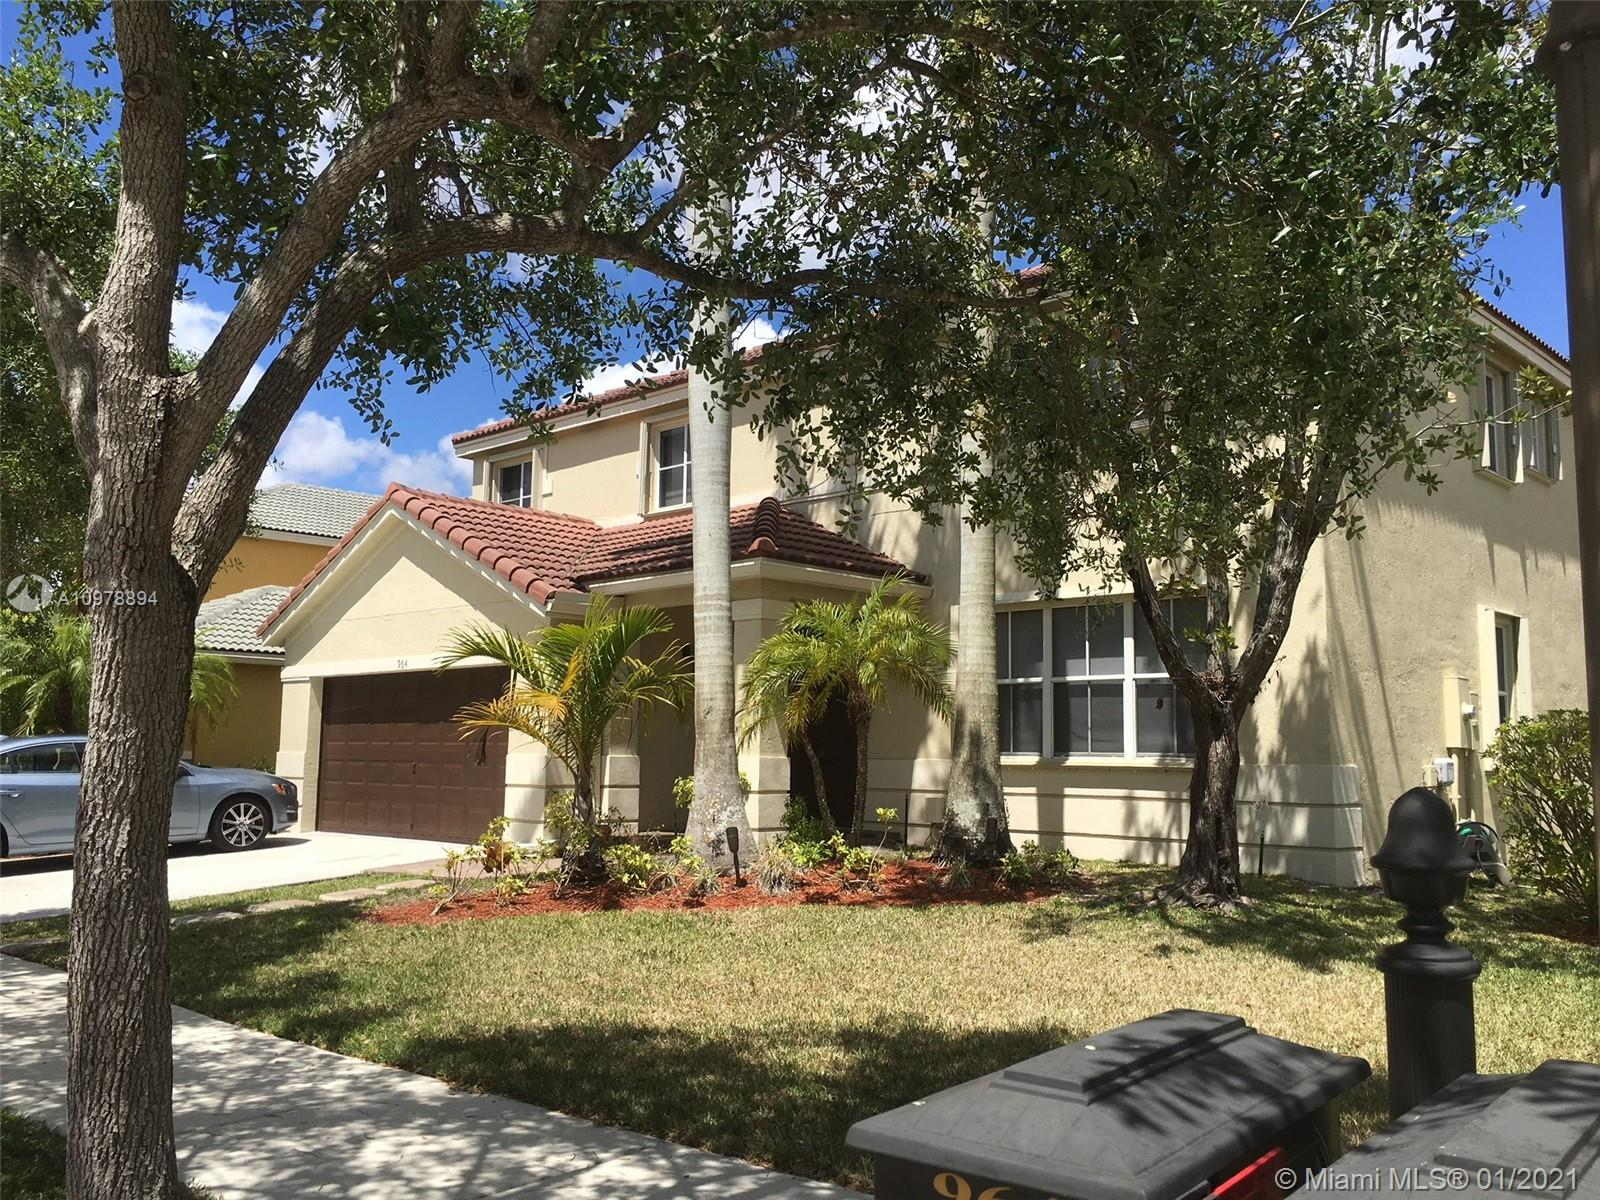 "Enjoy living in this large 5 bedrooms 3 1/2 bathrooms POOL house, with a 2 covered car garage, located in one of the most famous Savanna Gated Community, with resort like amenities like Lap pool, Resort pool , Water slide, Interactive Kiddy pool and Baby pool. impeccably maintained and clean home that is ready to move in .Huge family room open to kitchen with peninsula, ready for parties. Enjoy outdoor Florida living from the pavered patio with pool, and  barbecue. Upgraded features include accordion shutters , 42"""" kitchen cabinets , granite countertops, SS appliances, Master bedroom with in suite his & her closets. Separated laundry room downstairs. Excellent location in an ""A"" rated school zone, near restaurants, major roadways and only 20 mins from Sawgrass Mills. Low HOA."